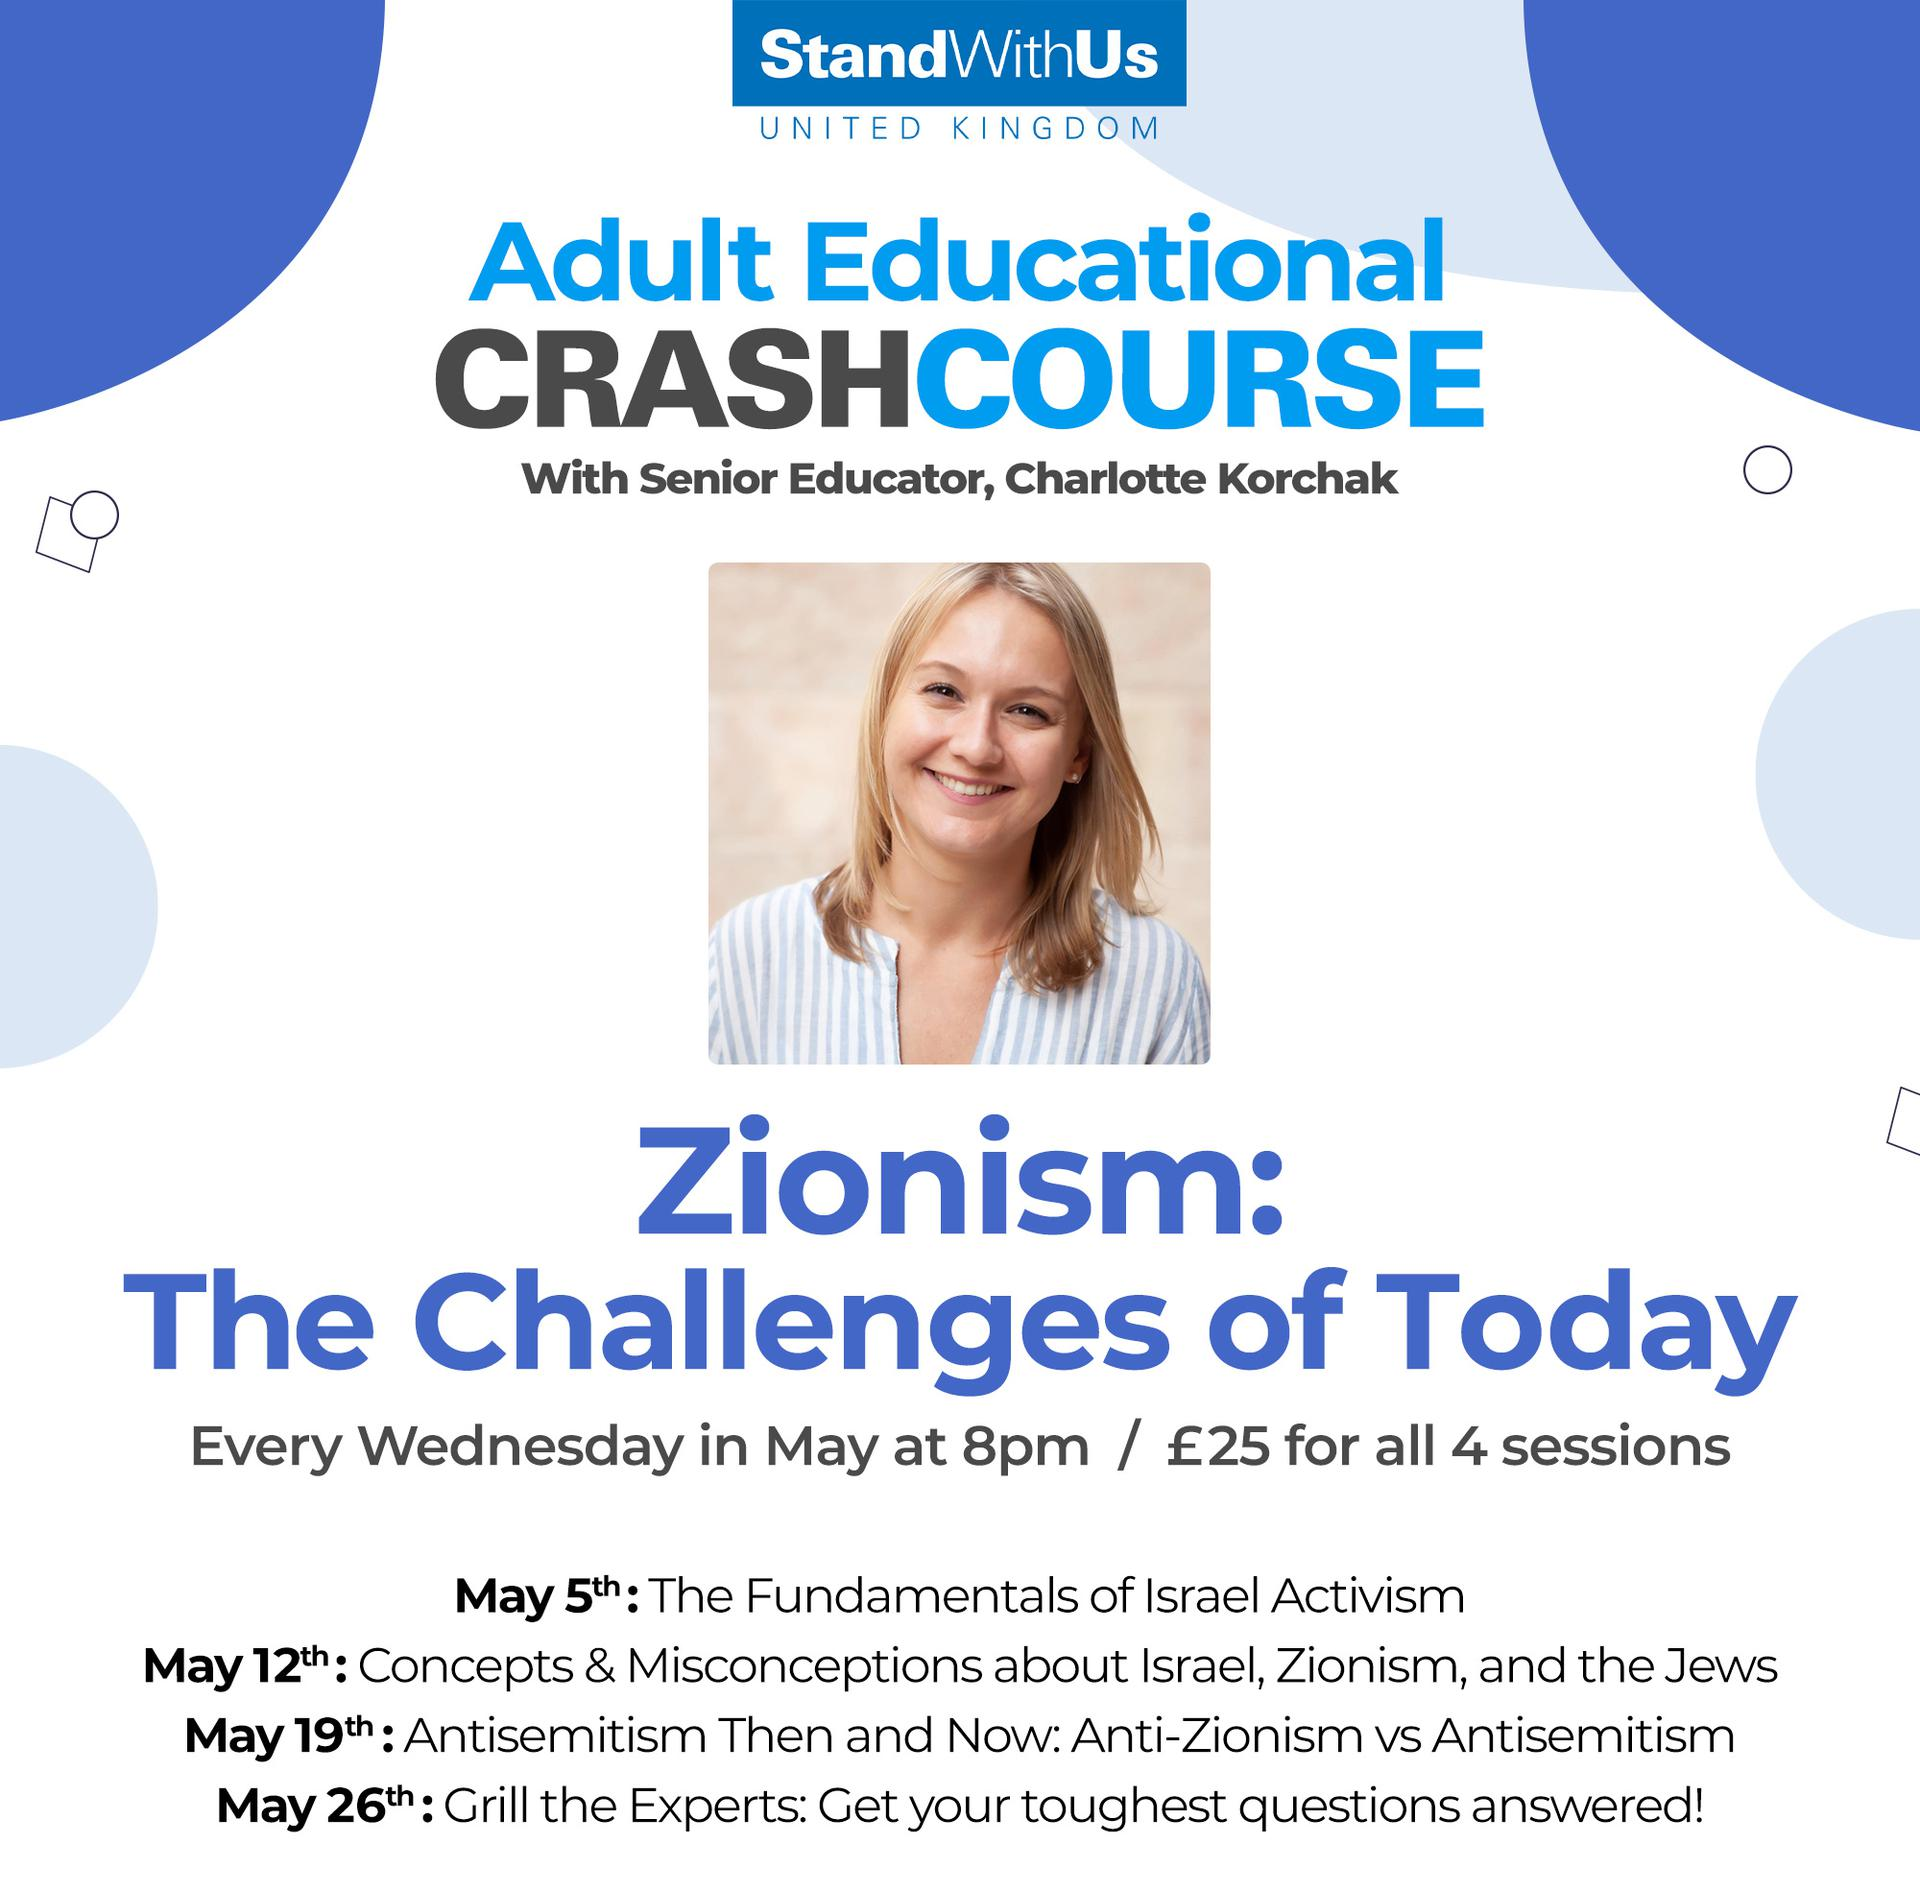 Zionism: The Challenges of Today